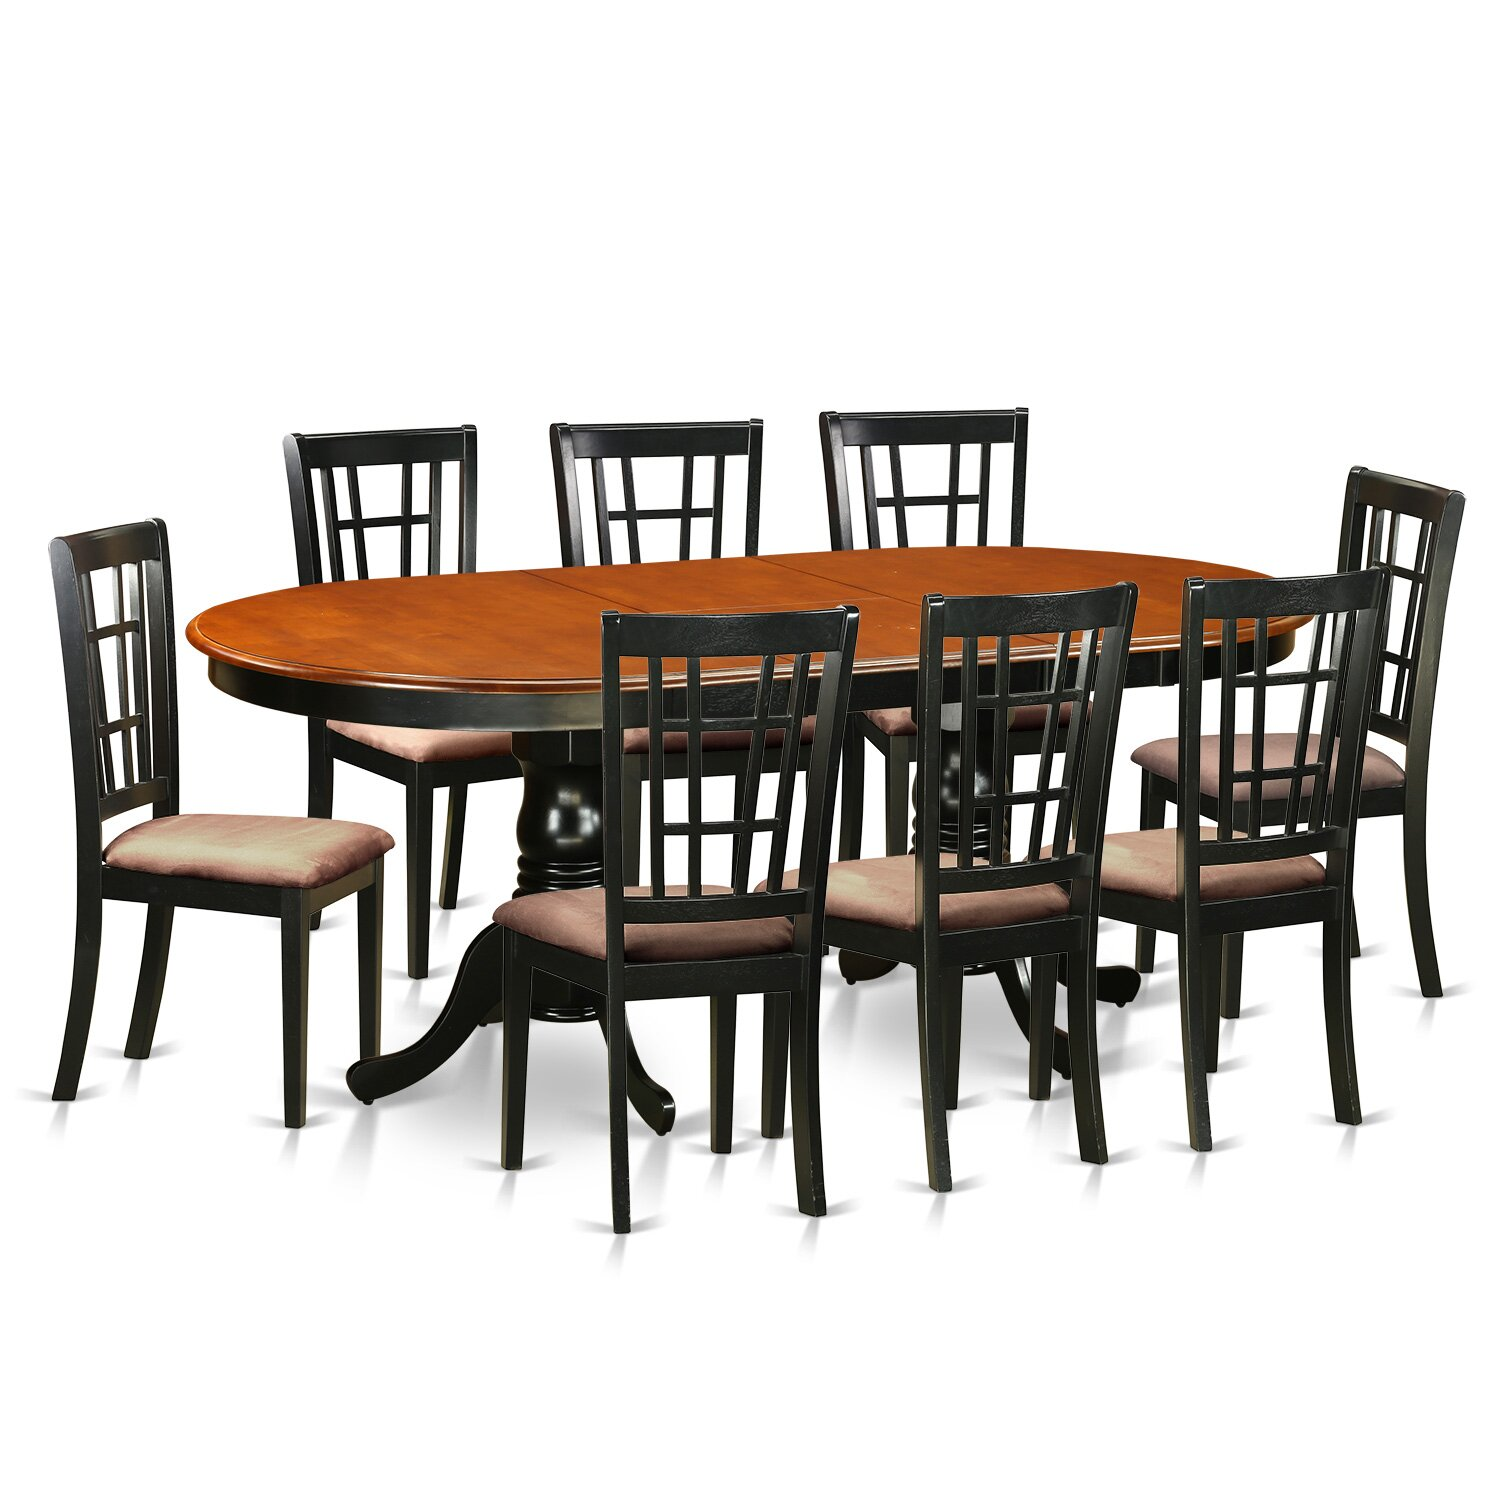 Kitchen Dining Chairs Solid Wood 8: Plainville 9 Piece Dining Set